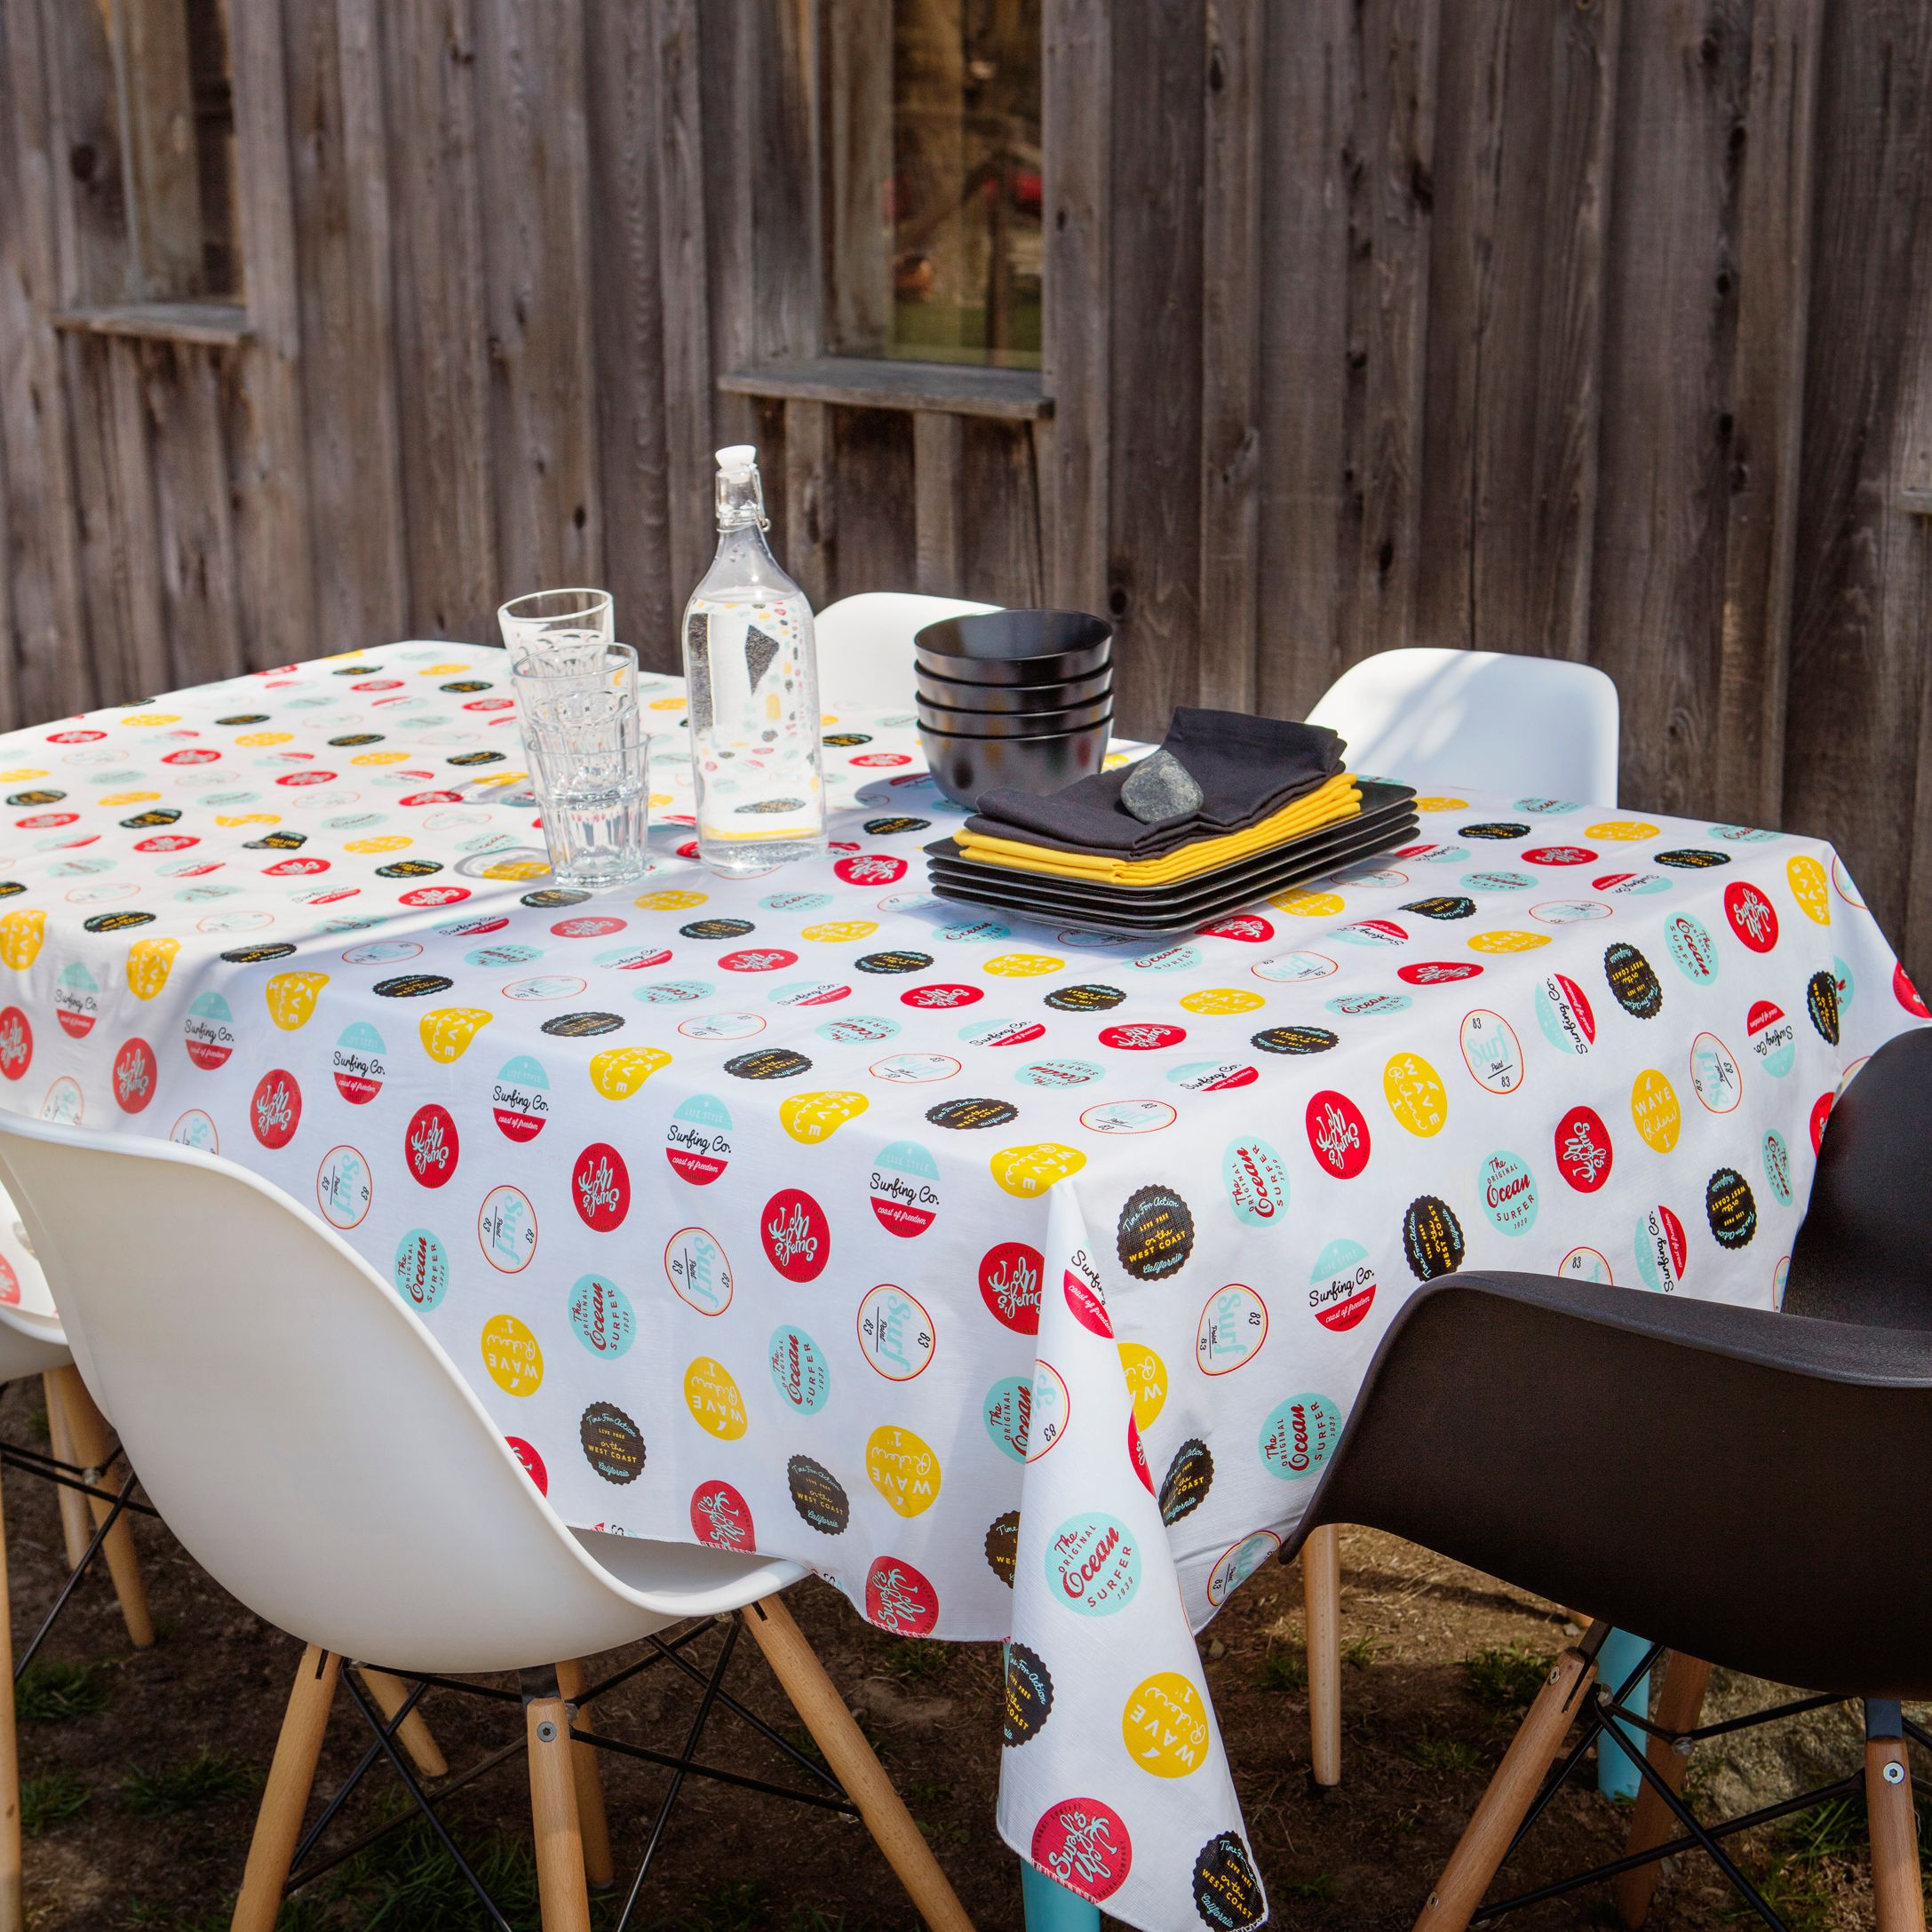 Vintage Surfing Badge Vinyl Tablecloth | Simons #simonsmaison #countryclub  #trend #tablecloth #